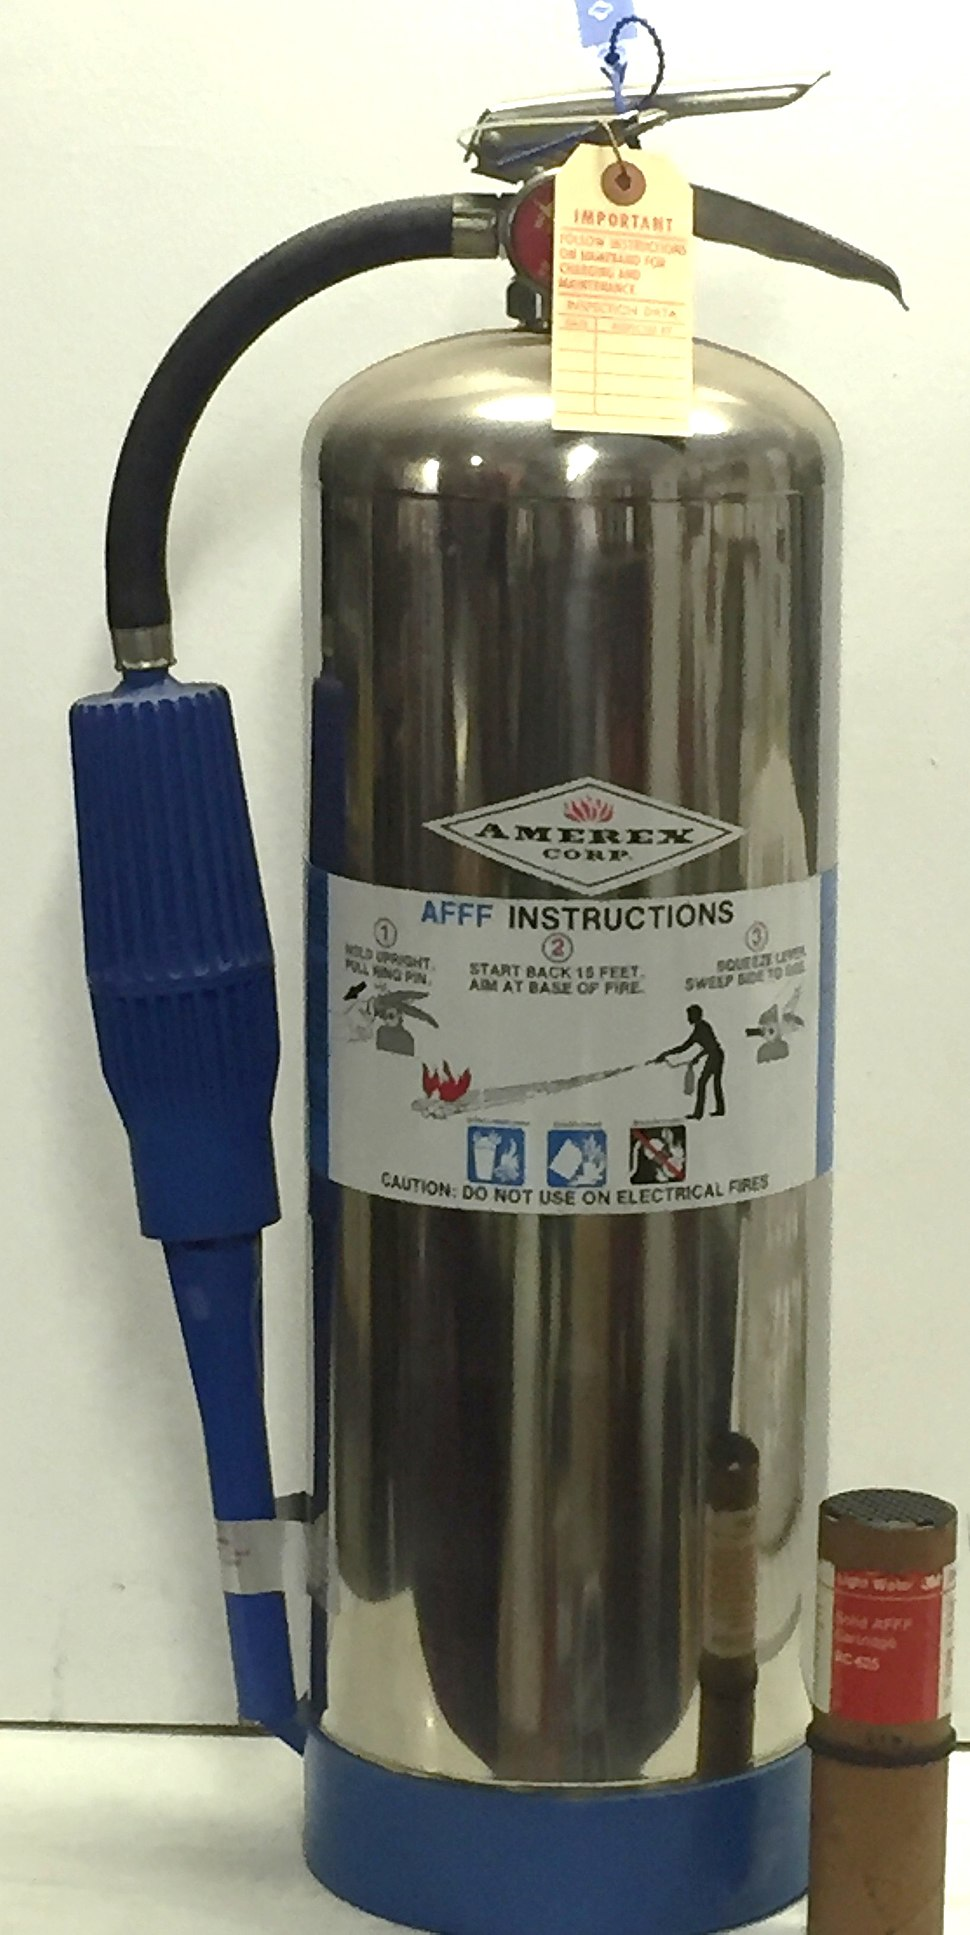 Solid-Charge AFFF Fire Extinguisher, 1980s